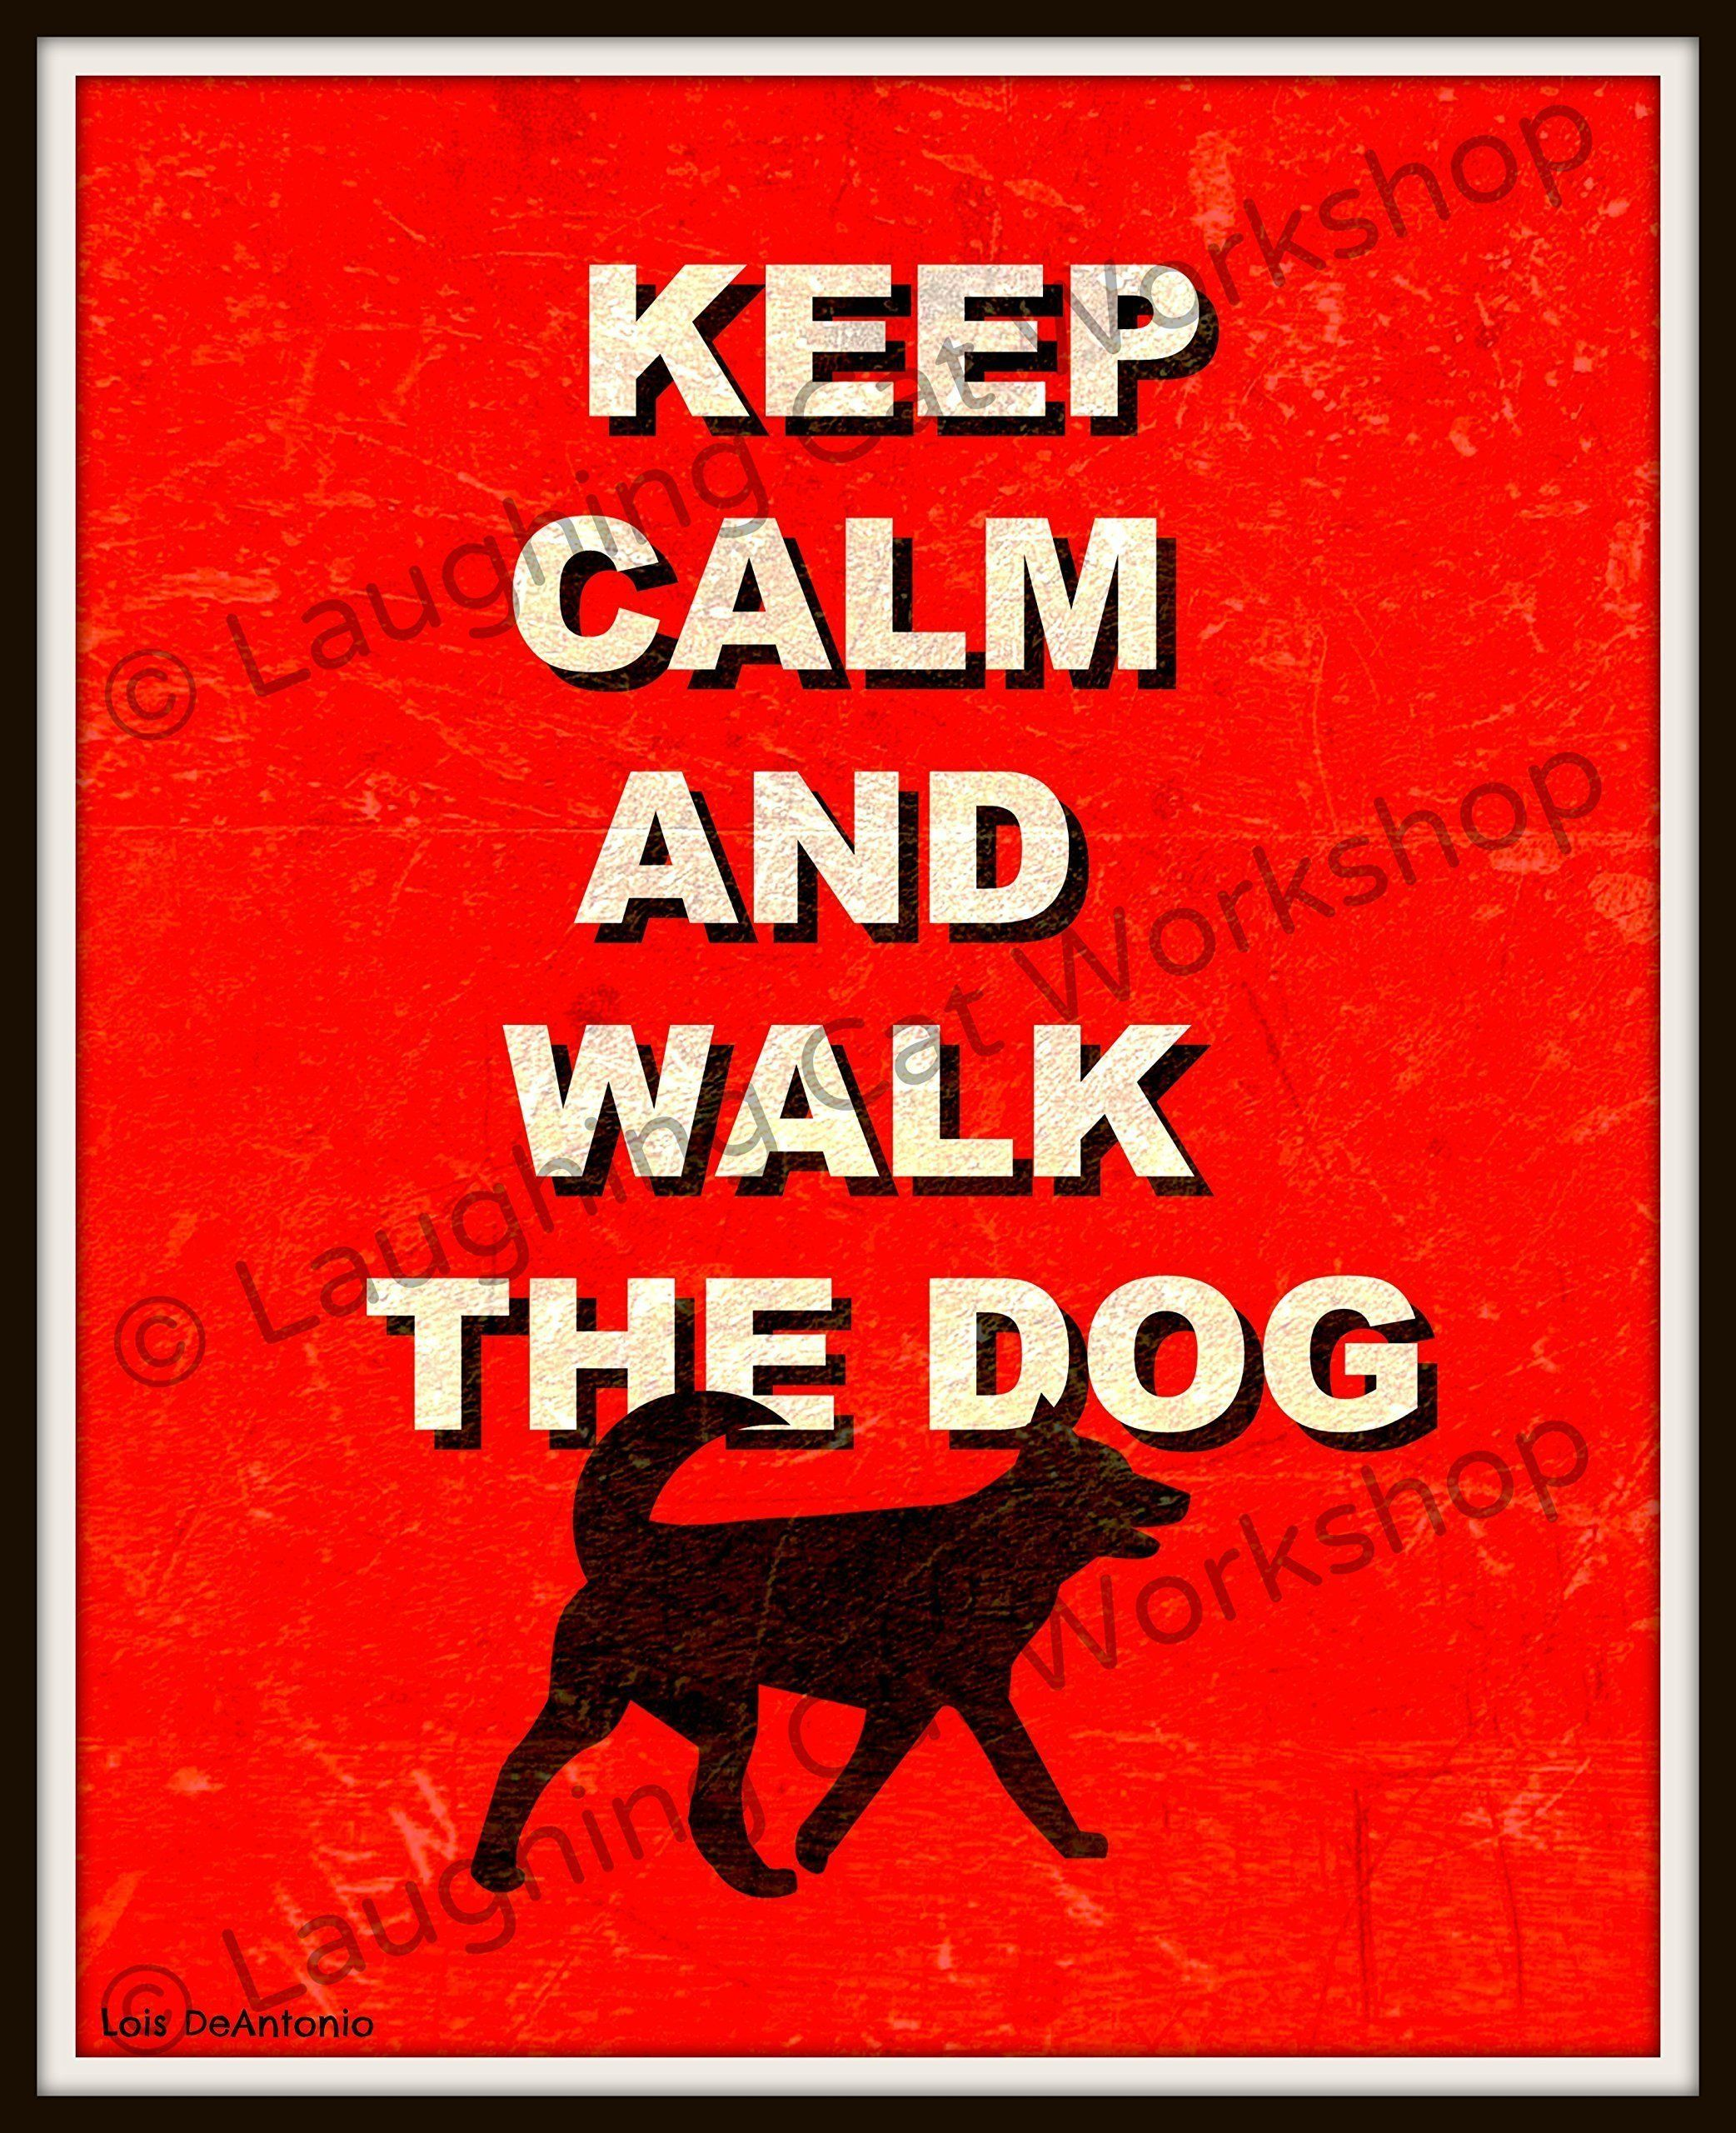 "Funny Dog Art Print, Funny Dog Quote, Keep Calm and Walk the Dog, Pet Typography print, Dog lovers gift, Dorm decor, Country Rustic Dog Decor. ""Keep Calm and Walk the Dog"" Country rustic dog print, professionally printed in a matte finish on Kodak Professional Endura Paper and mailed to you directly from the printer. USPS Track & Confirm tracking numbers are provided at no additional charge. Mat and frame are not included. * This item is not made of metal or wood. It is an art print. :)…"